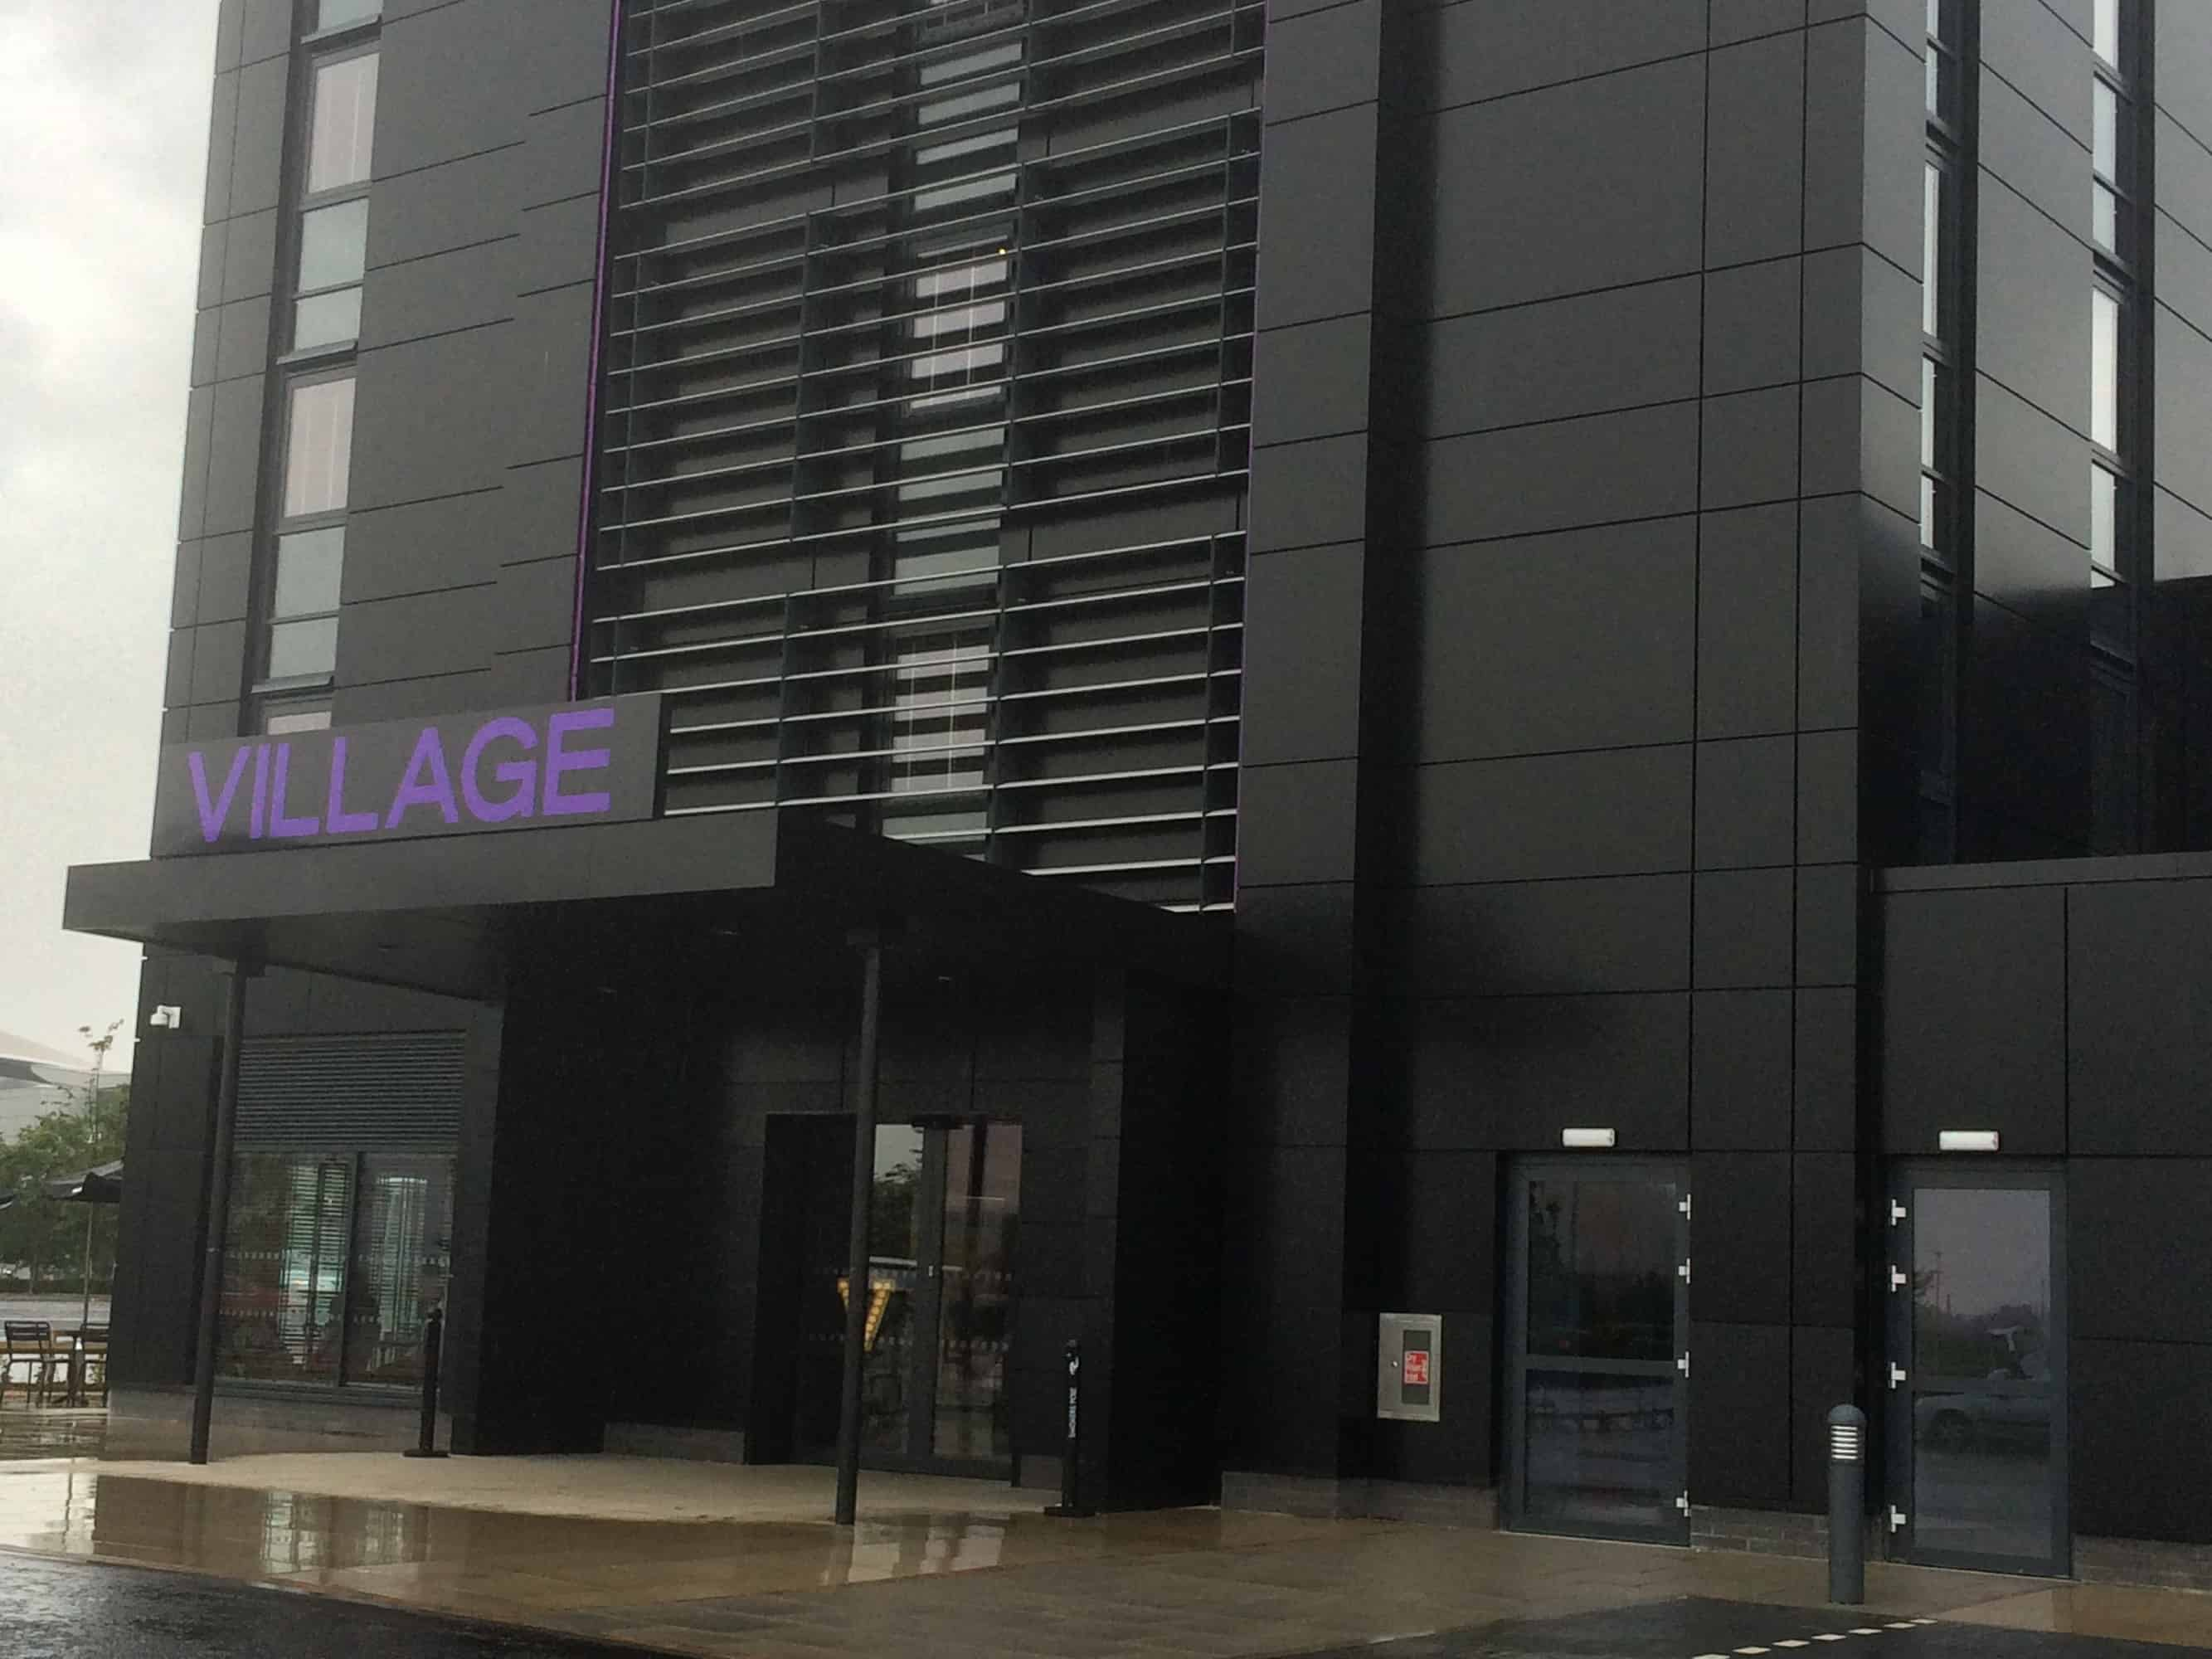 New Hotel The Village Glasgow Launches